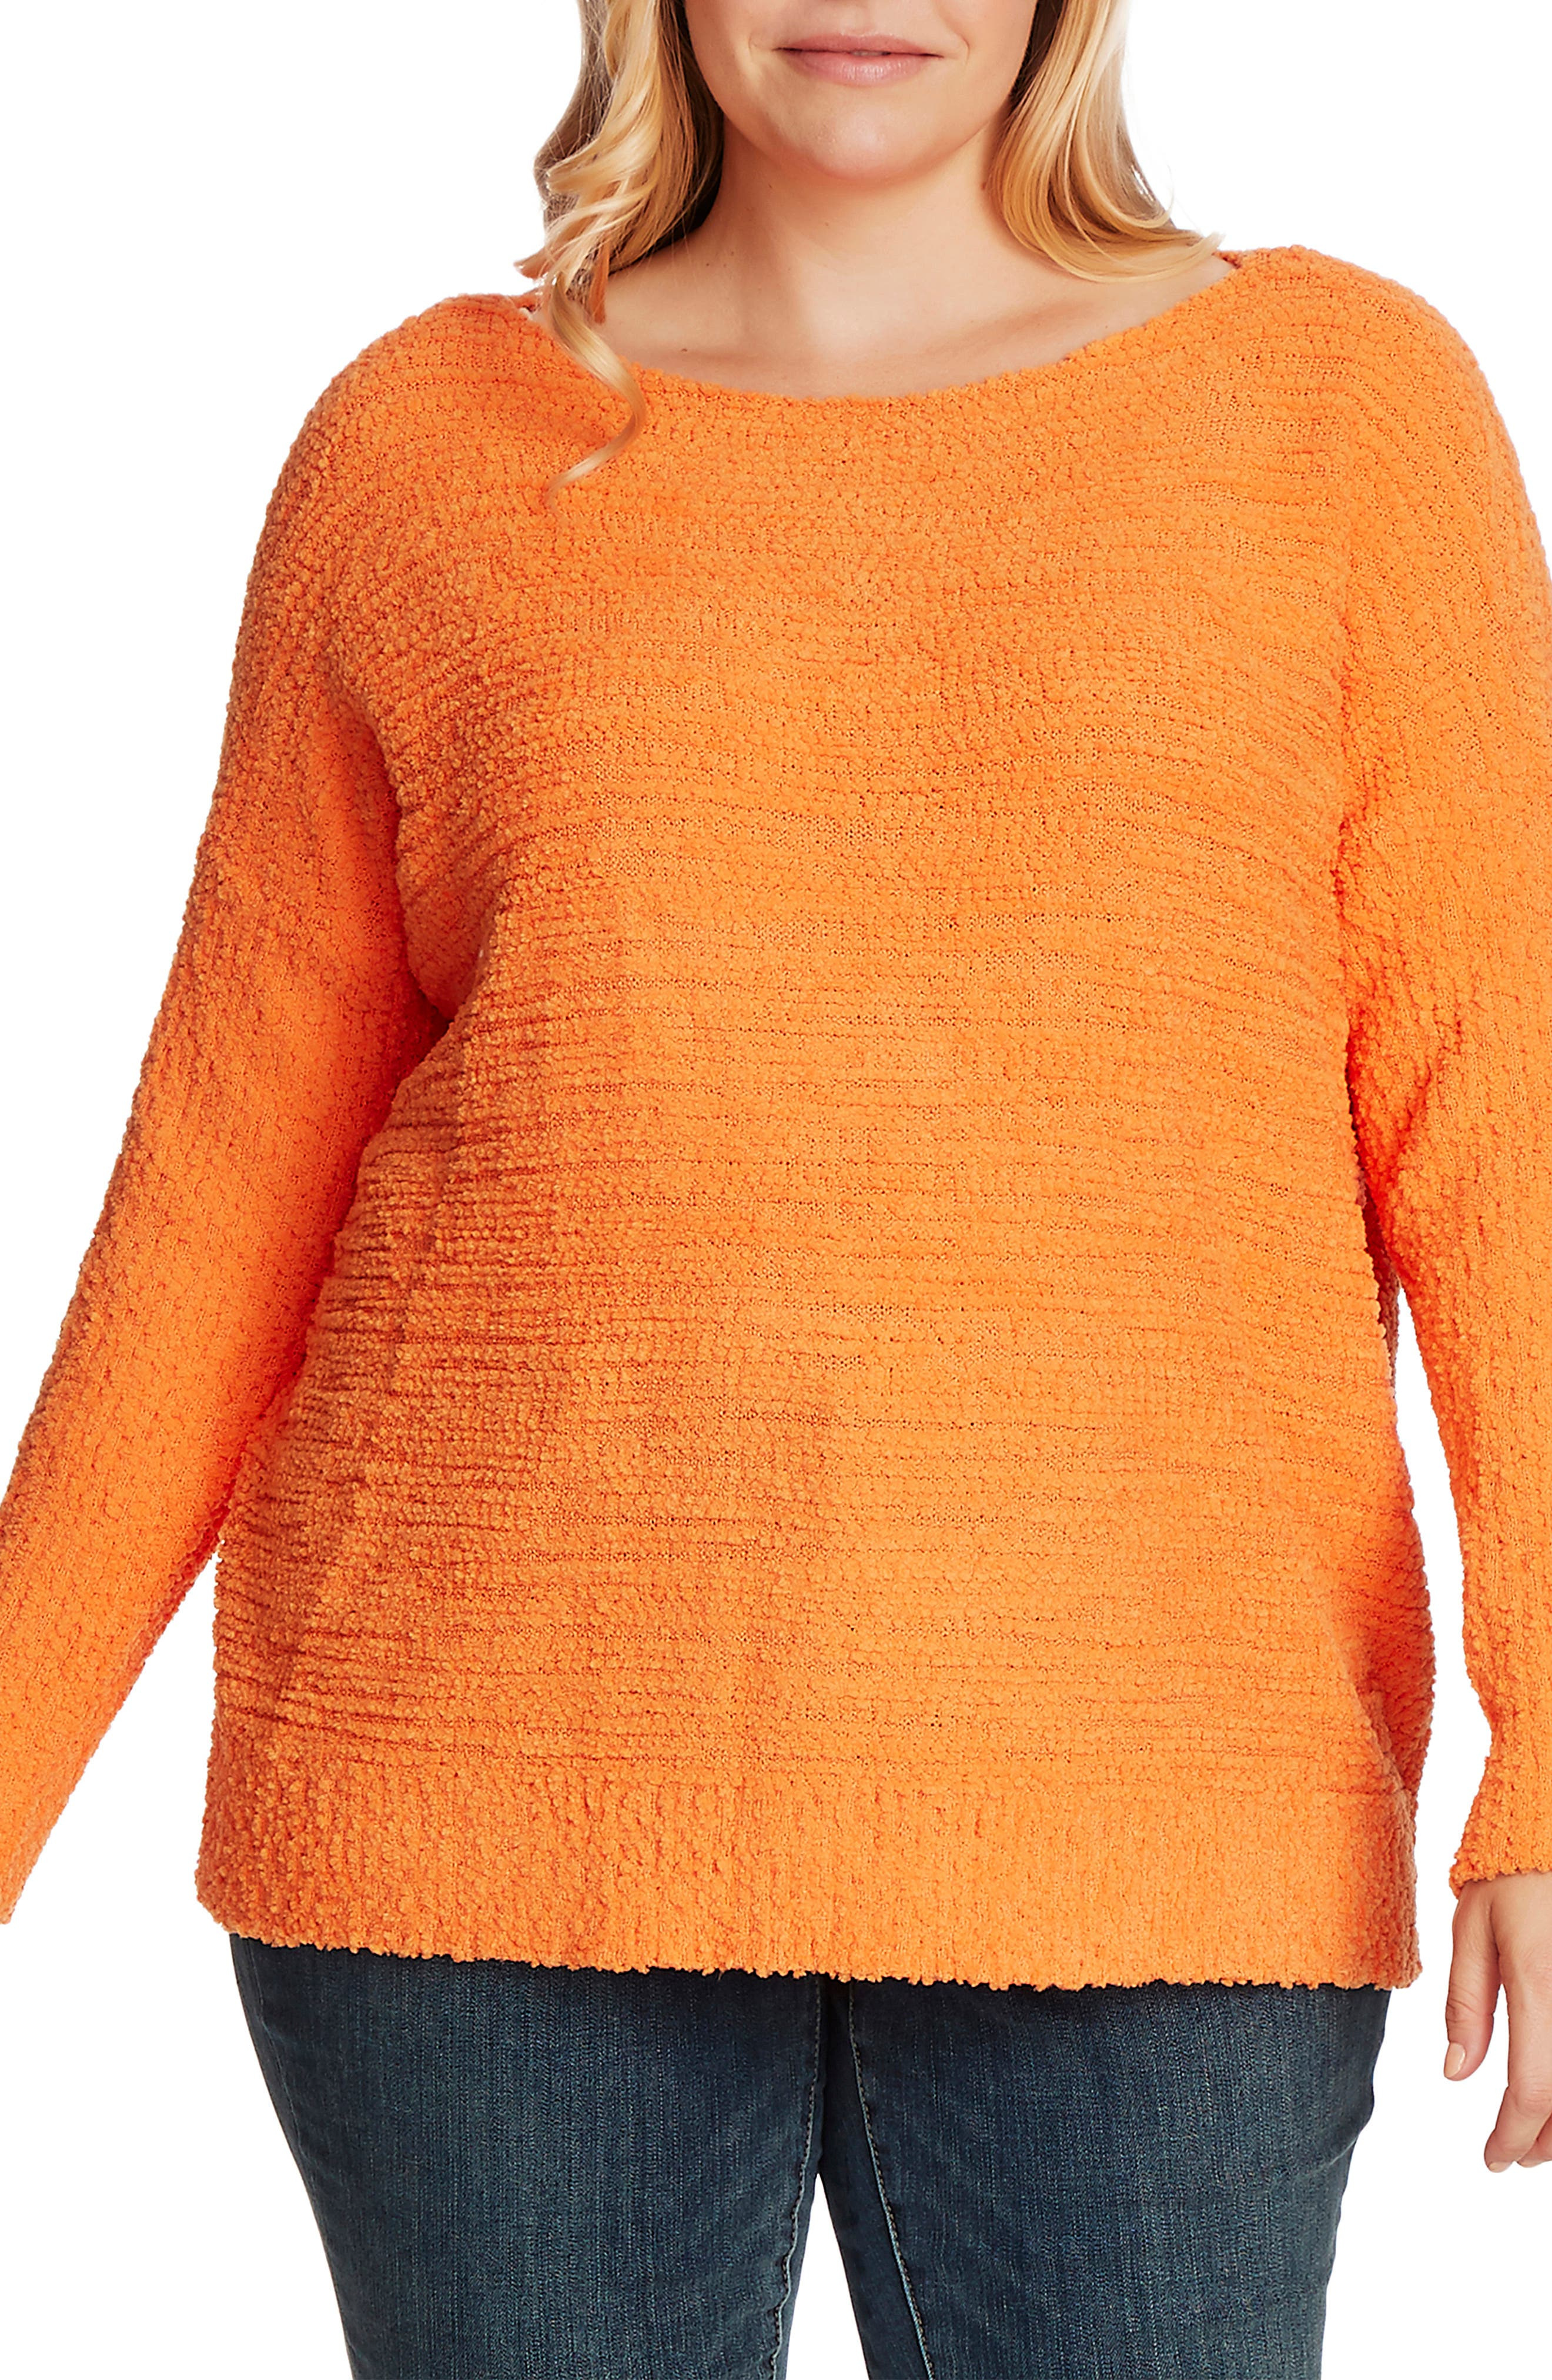 Image of Vince Camuto Teddy Yarn Boat Neck Sweater